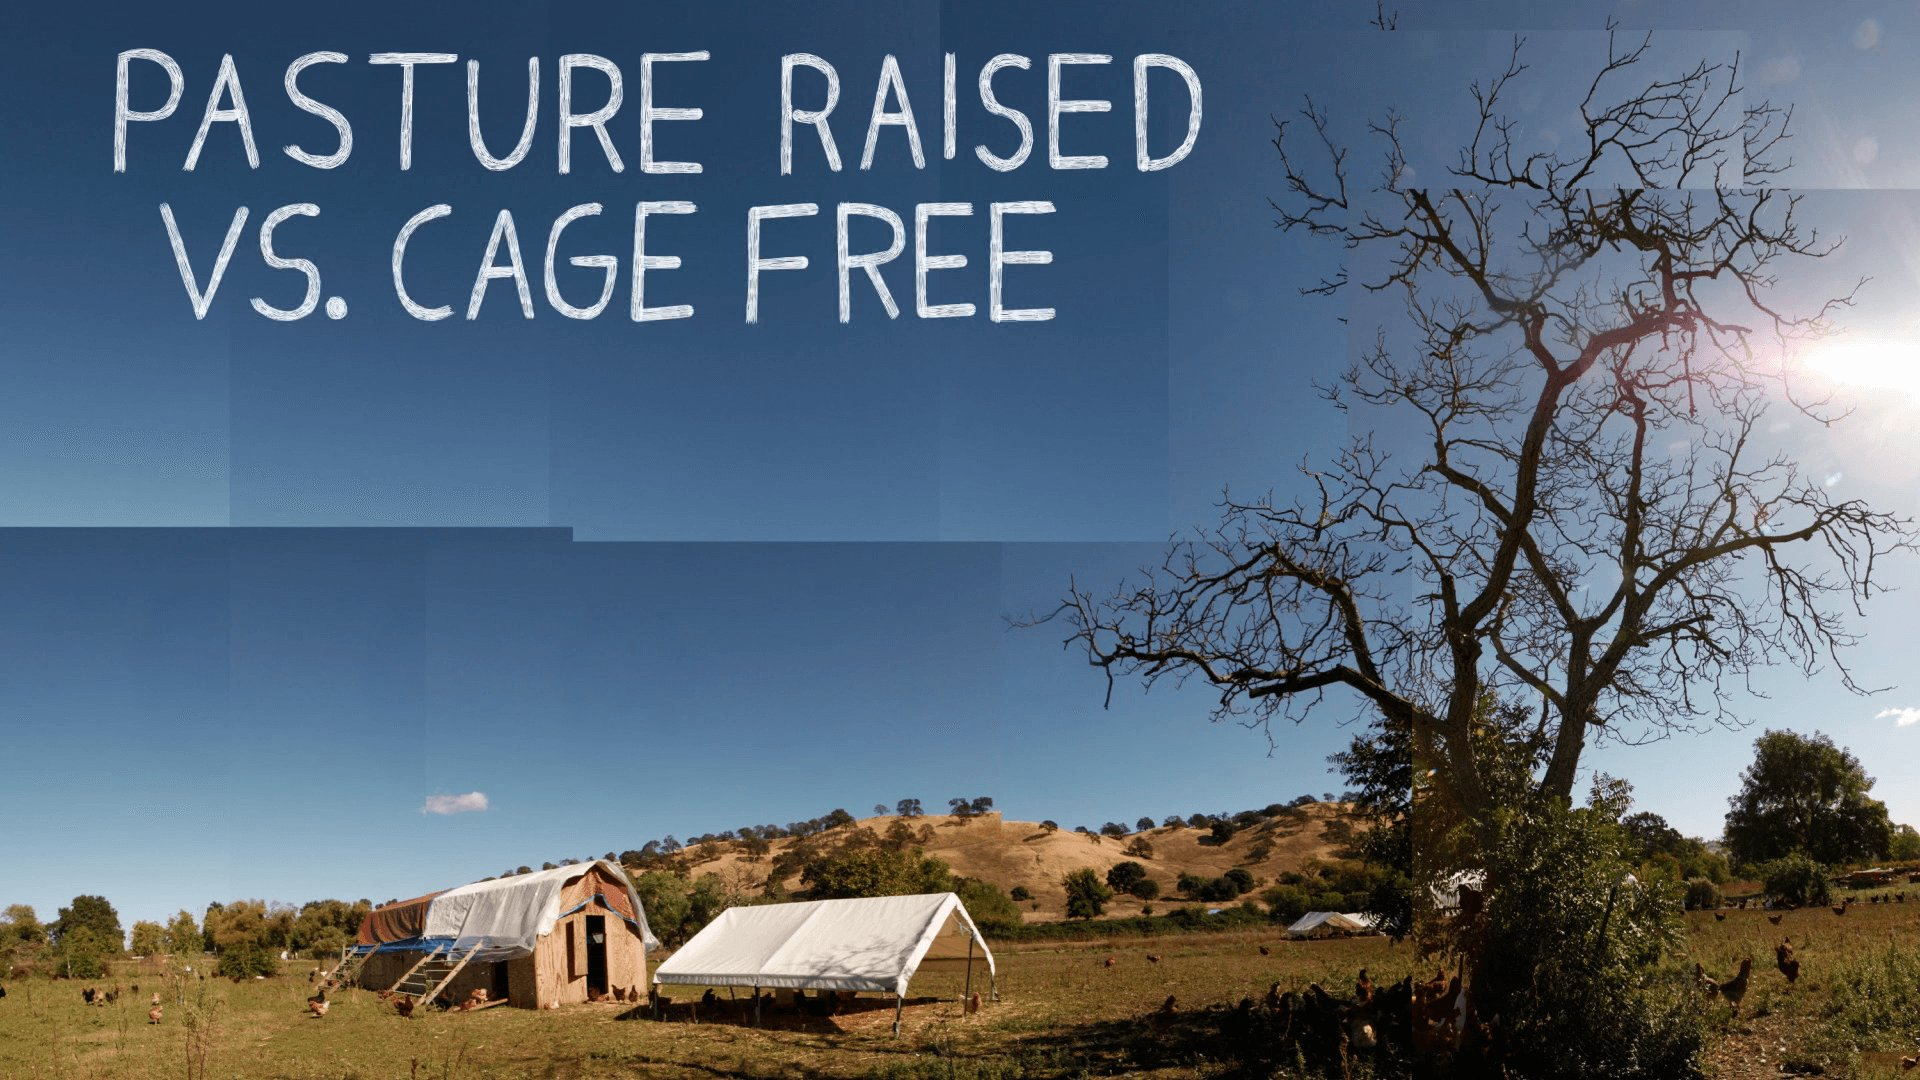 Is Cage Free Eggs healthier? According to research